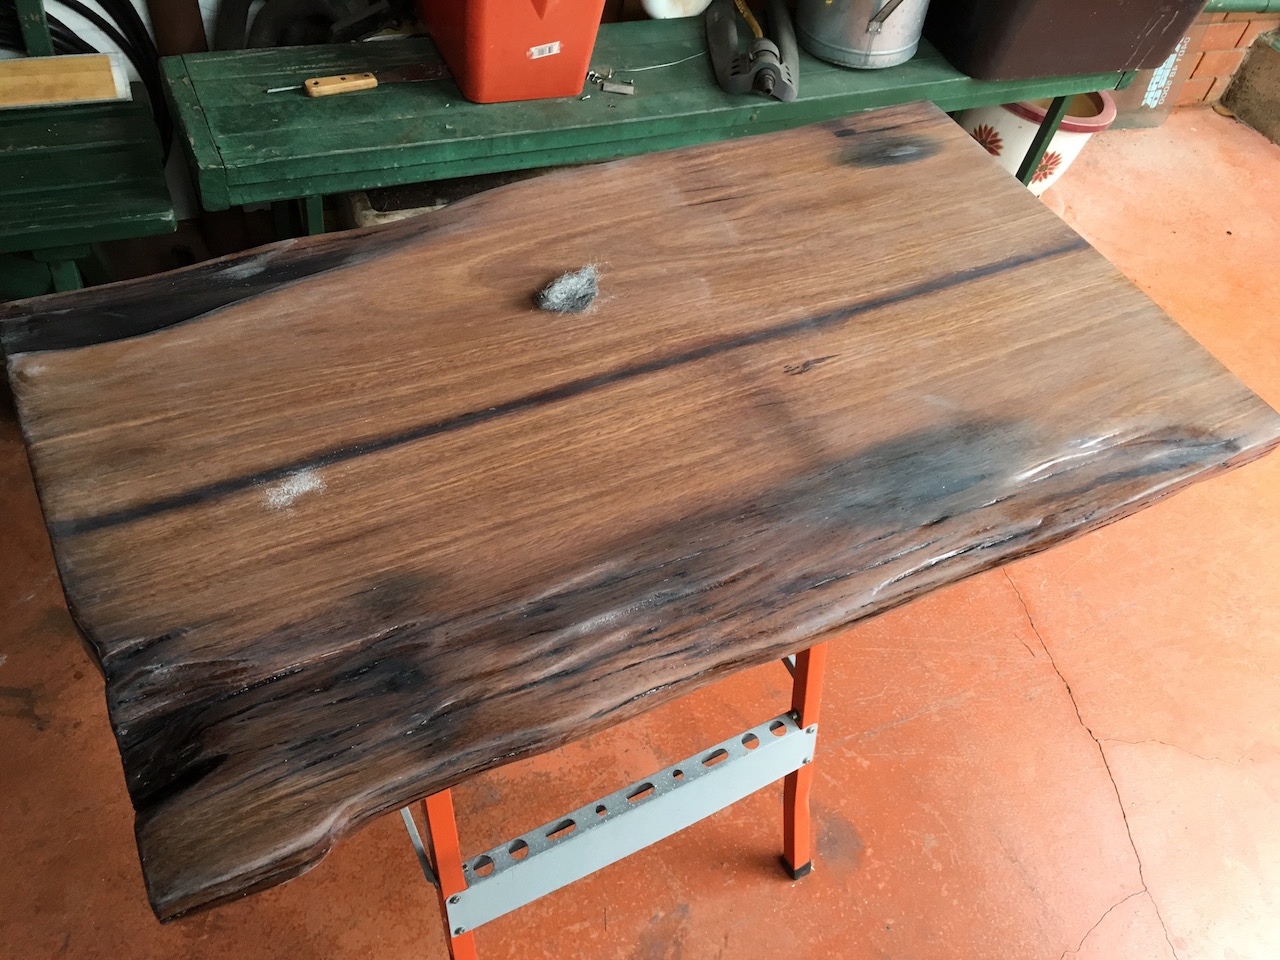 Superb img of DIY Hardwood Coffee Table made out of recycled wood (part 4) Igor's  with #BA5211 color and 1280x960 pixels